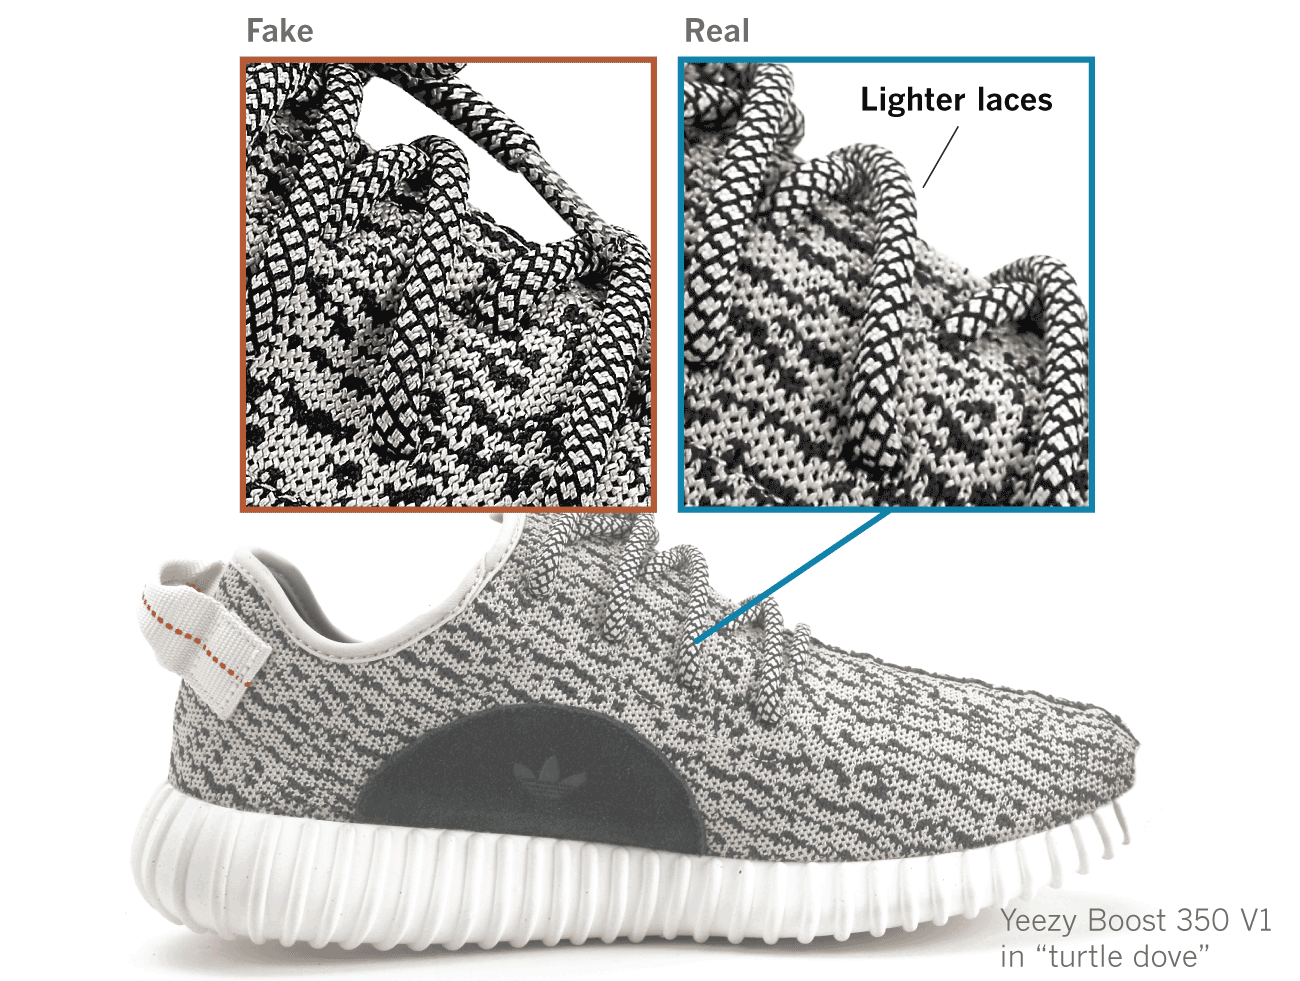 d32d6f9745ce1 Replicating the highly coveted and commercially successful Adidas Yeezy has  become so sophisticated that even some of the most astute fans can t tell  the ...